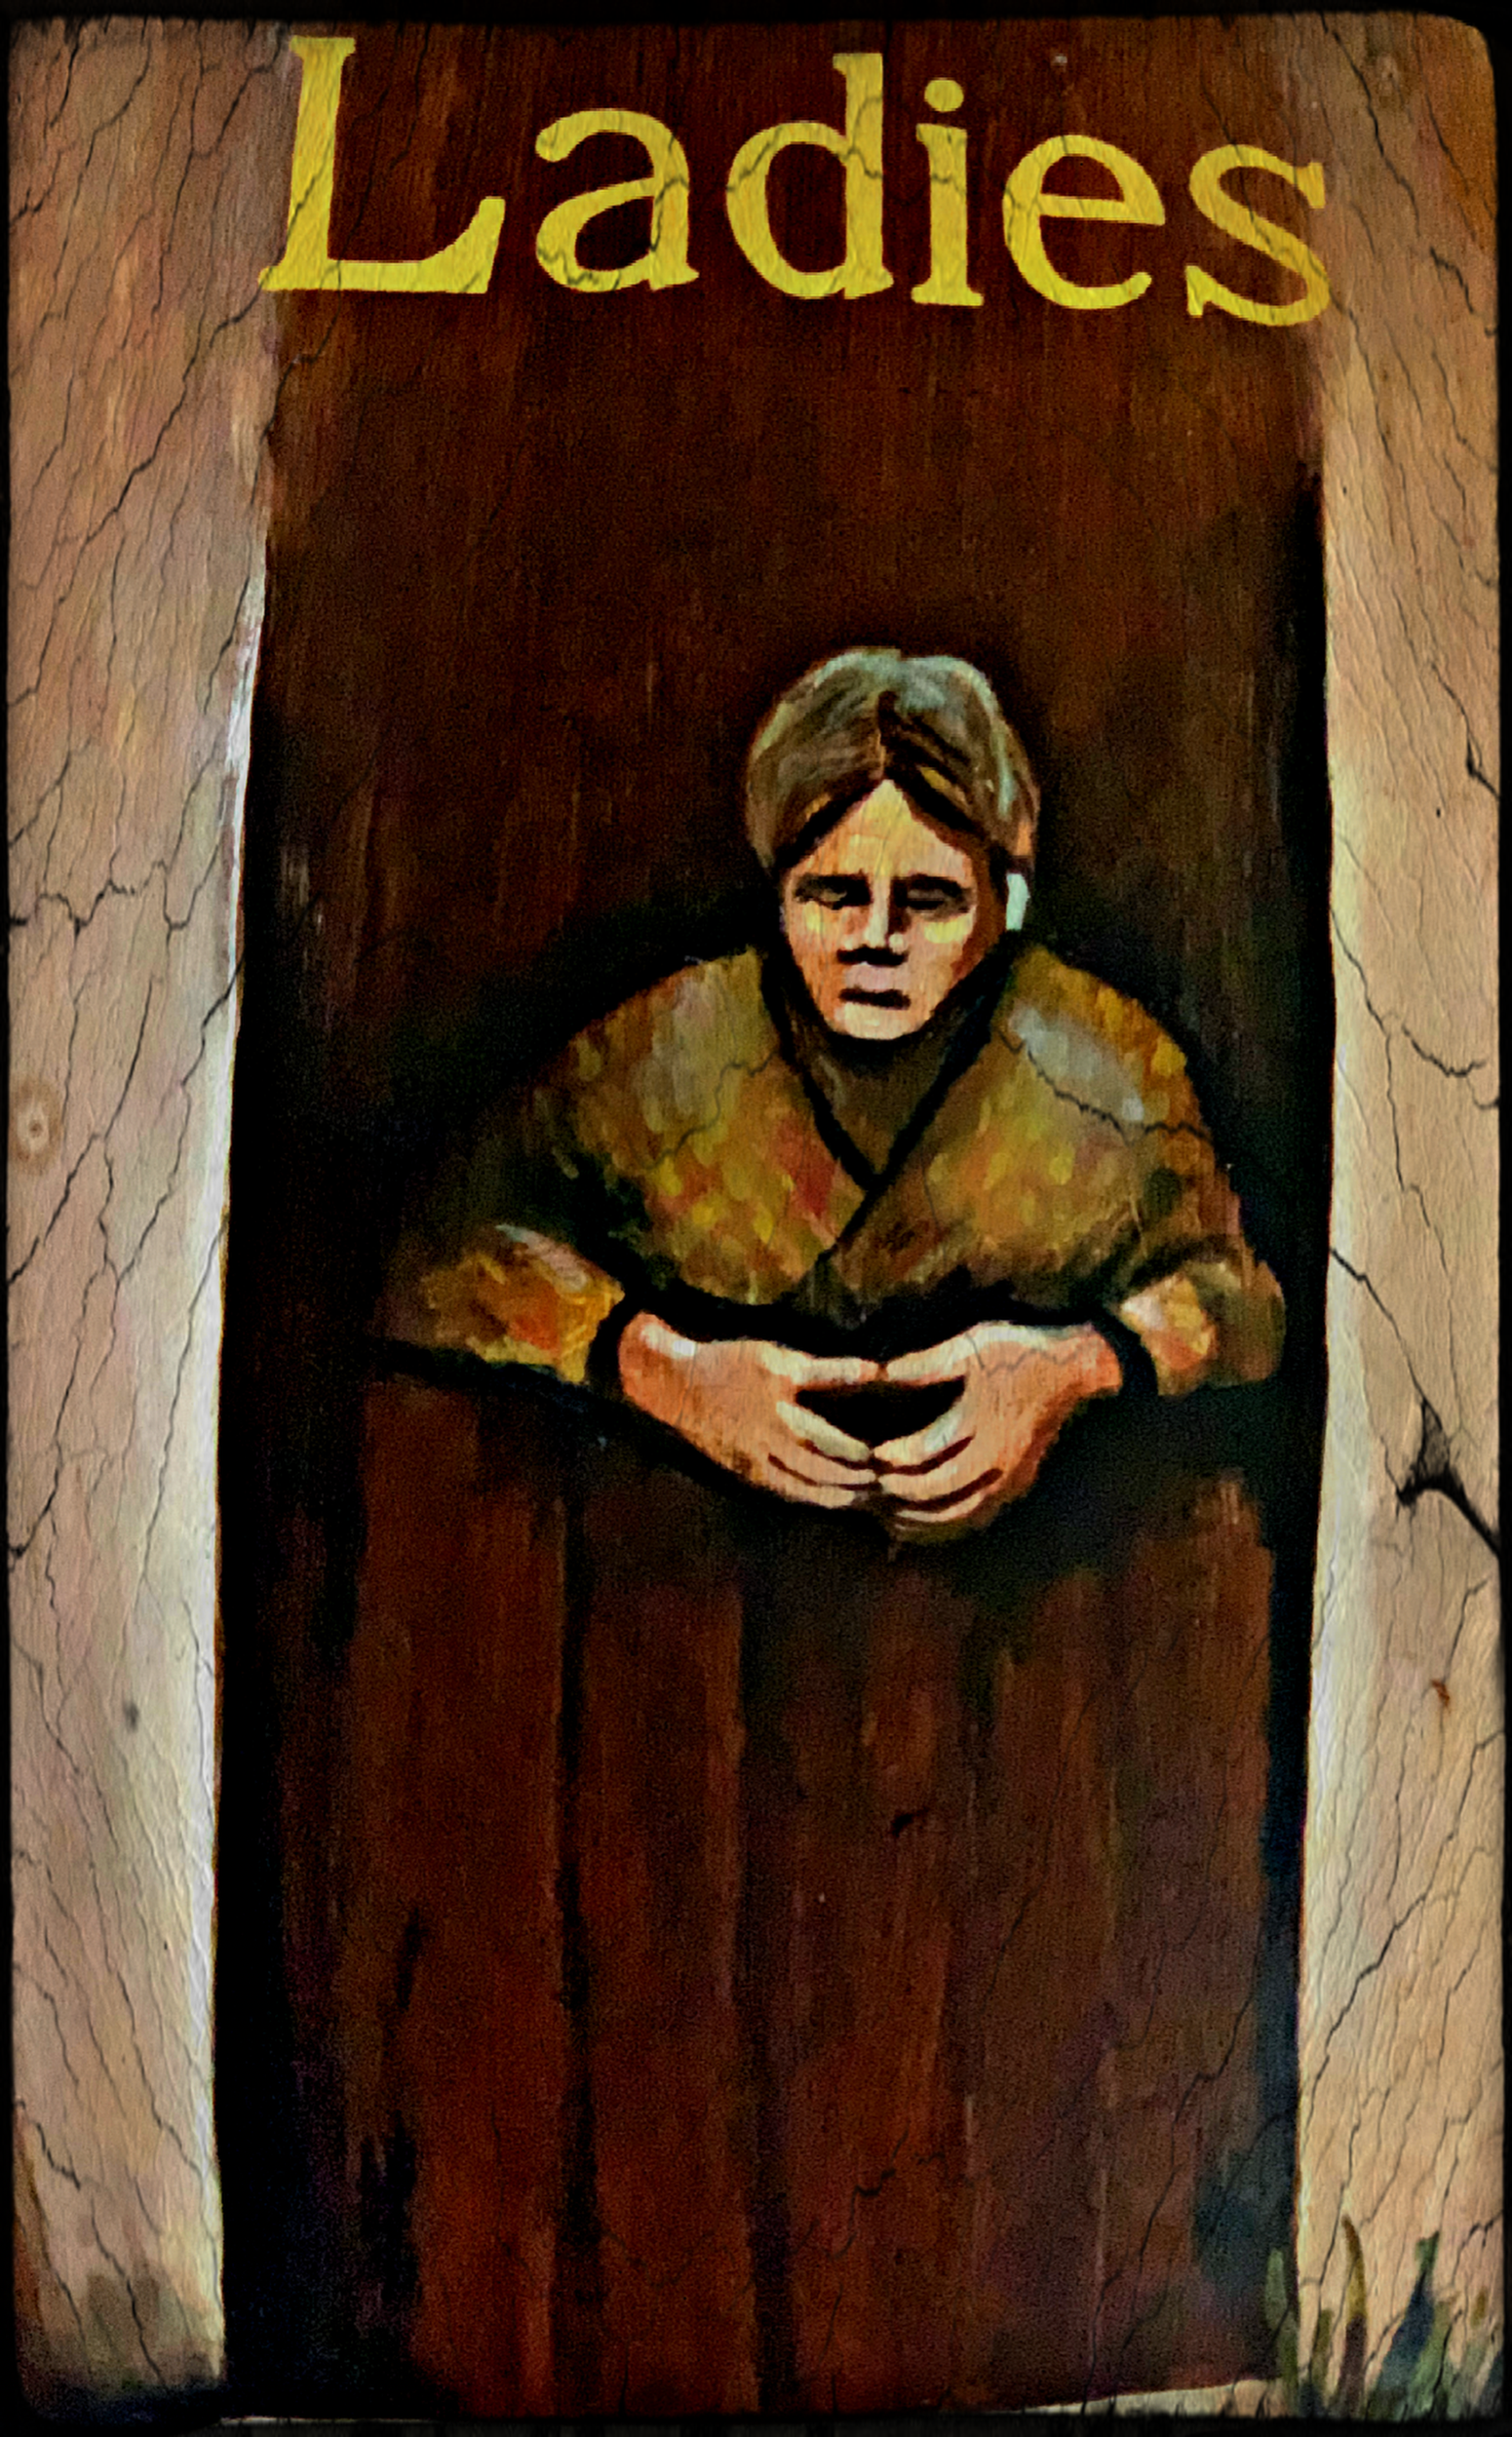 June 4, 2019 - Restroom sign on the Wild Atlantic Way, Ireland [edited in iColorama].